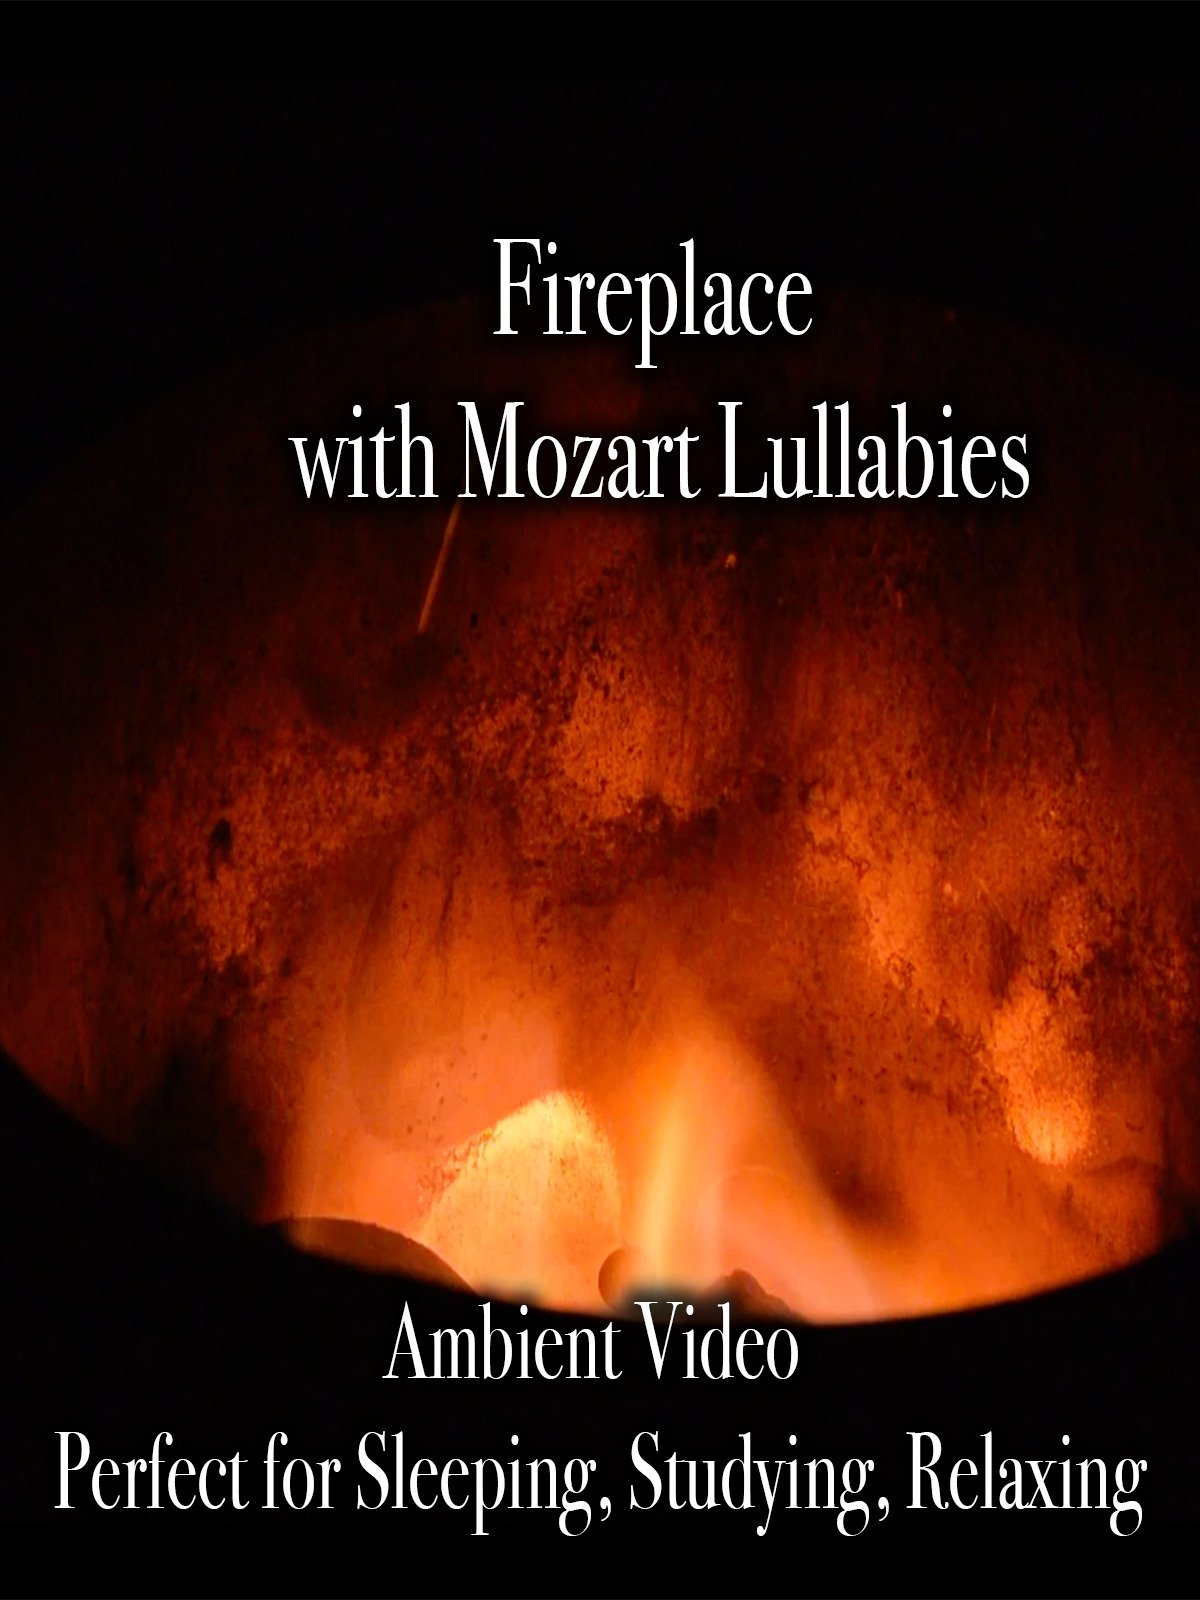 Fireplace with Mozart Lullabies Ambient Video Perfect for Sleeping, Studying, Relaxing